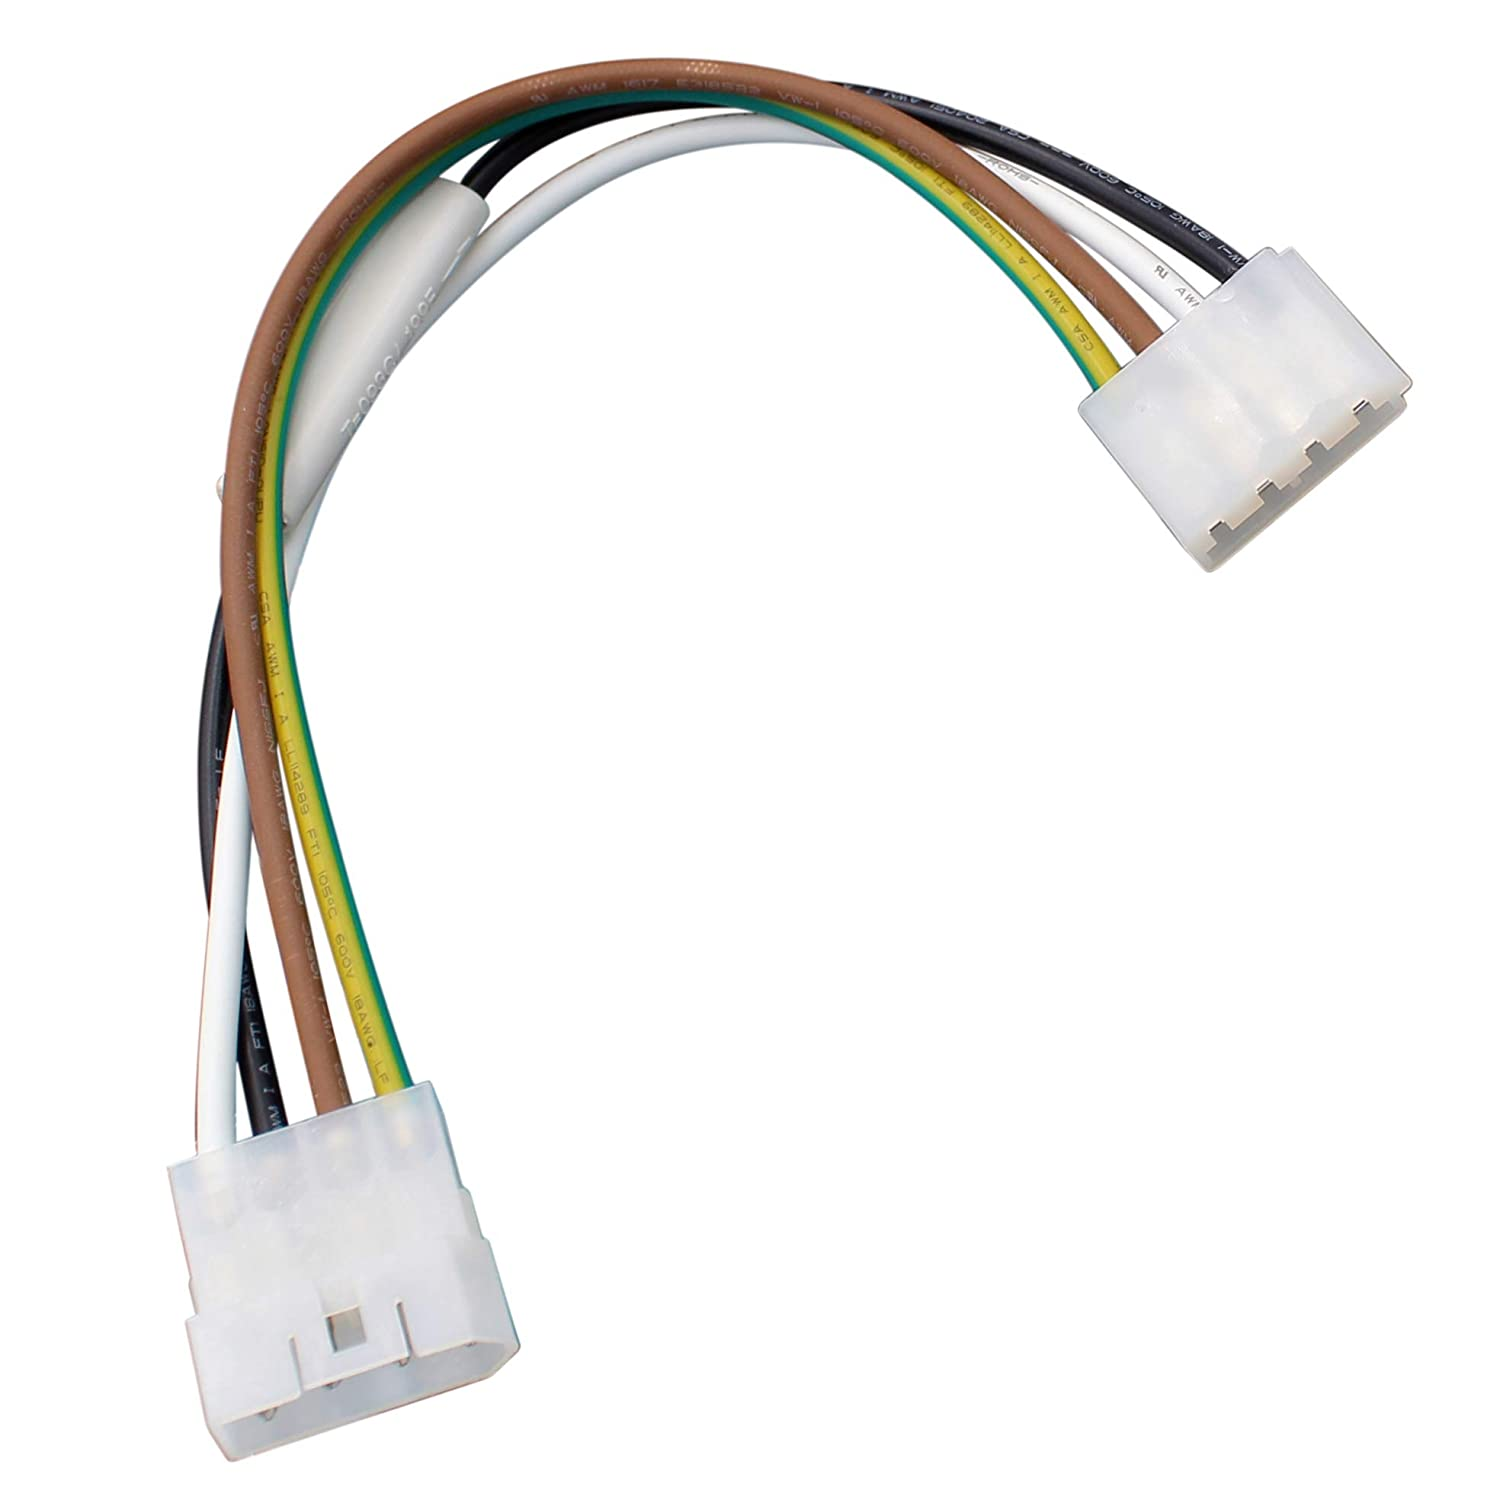 Supplying Demand 2187467 Ice Maker Wire Harness Compatible With Whirlpool Fits 2187464, 627840